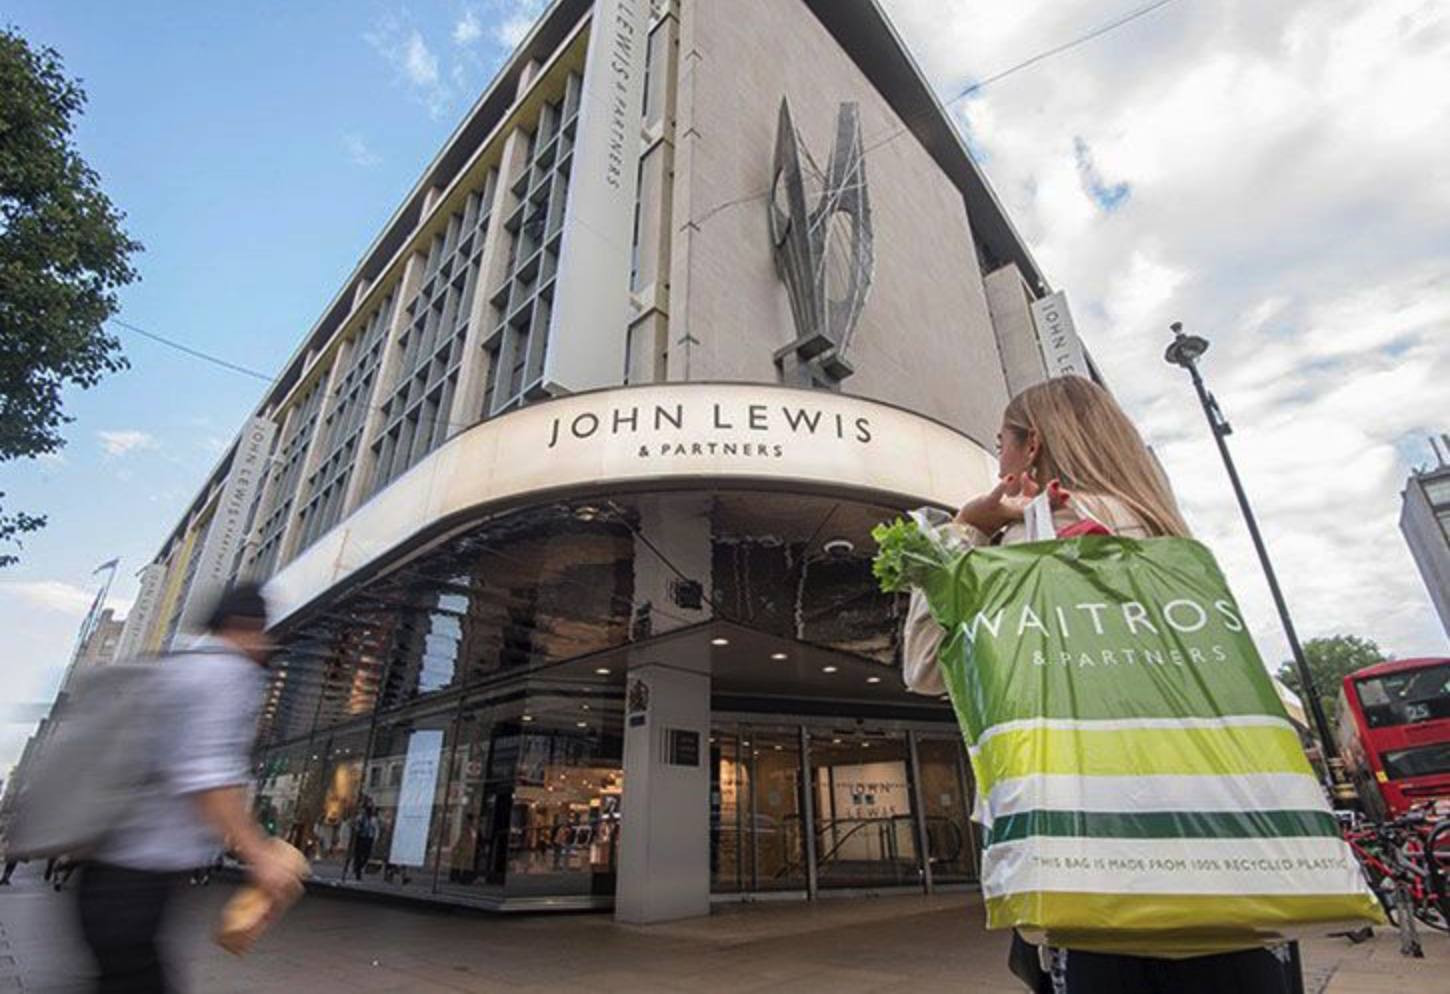 John Lewis to replace 'Never knowingly undersold' price promise